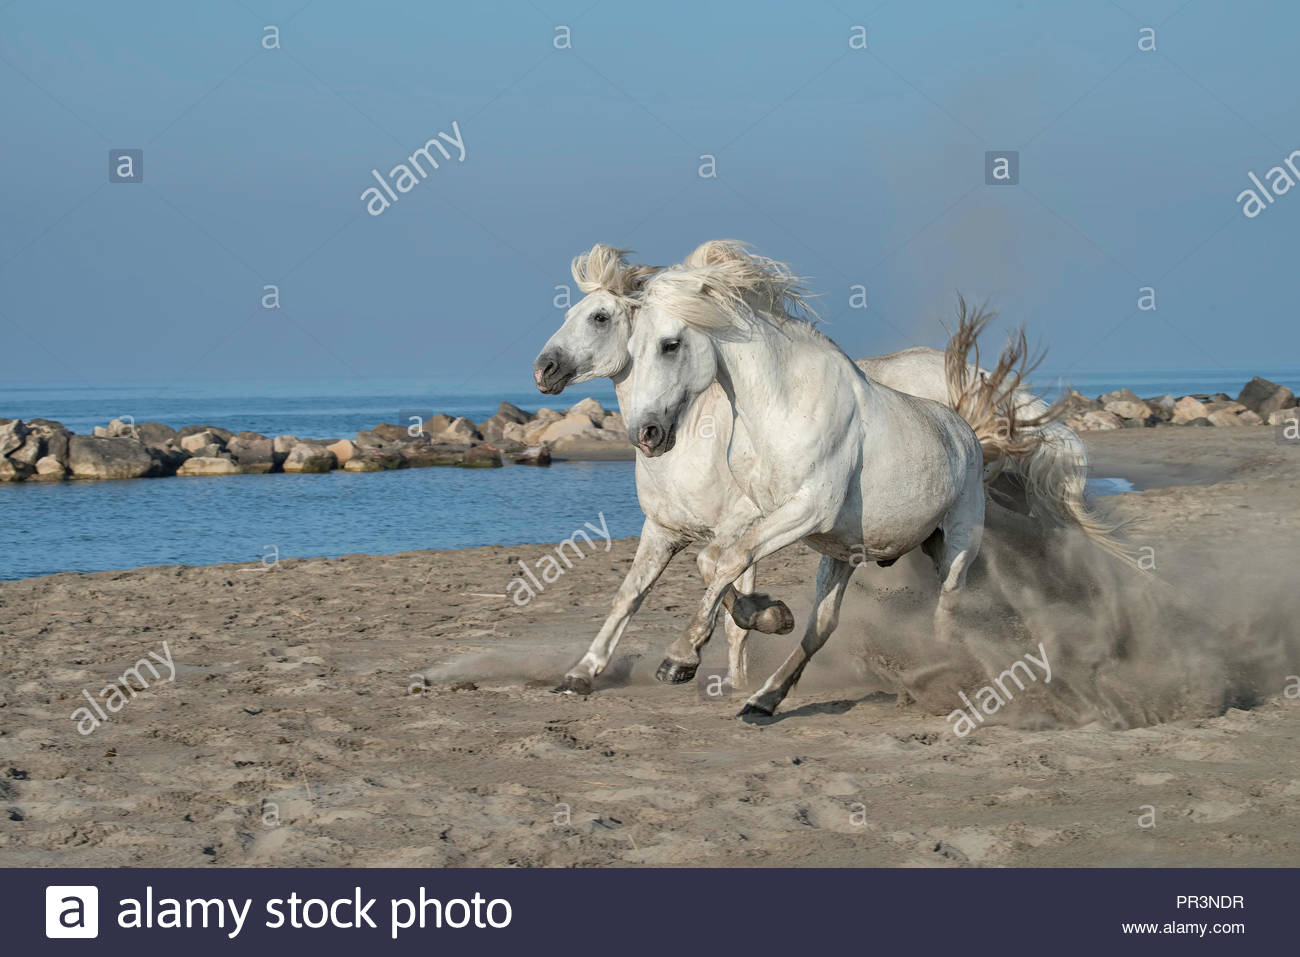 Two white horses running on the beach in Camargue, France - Stock Image